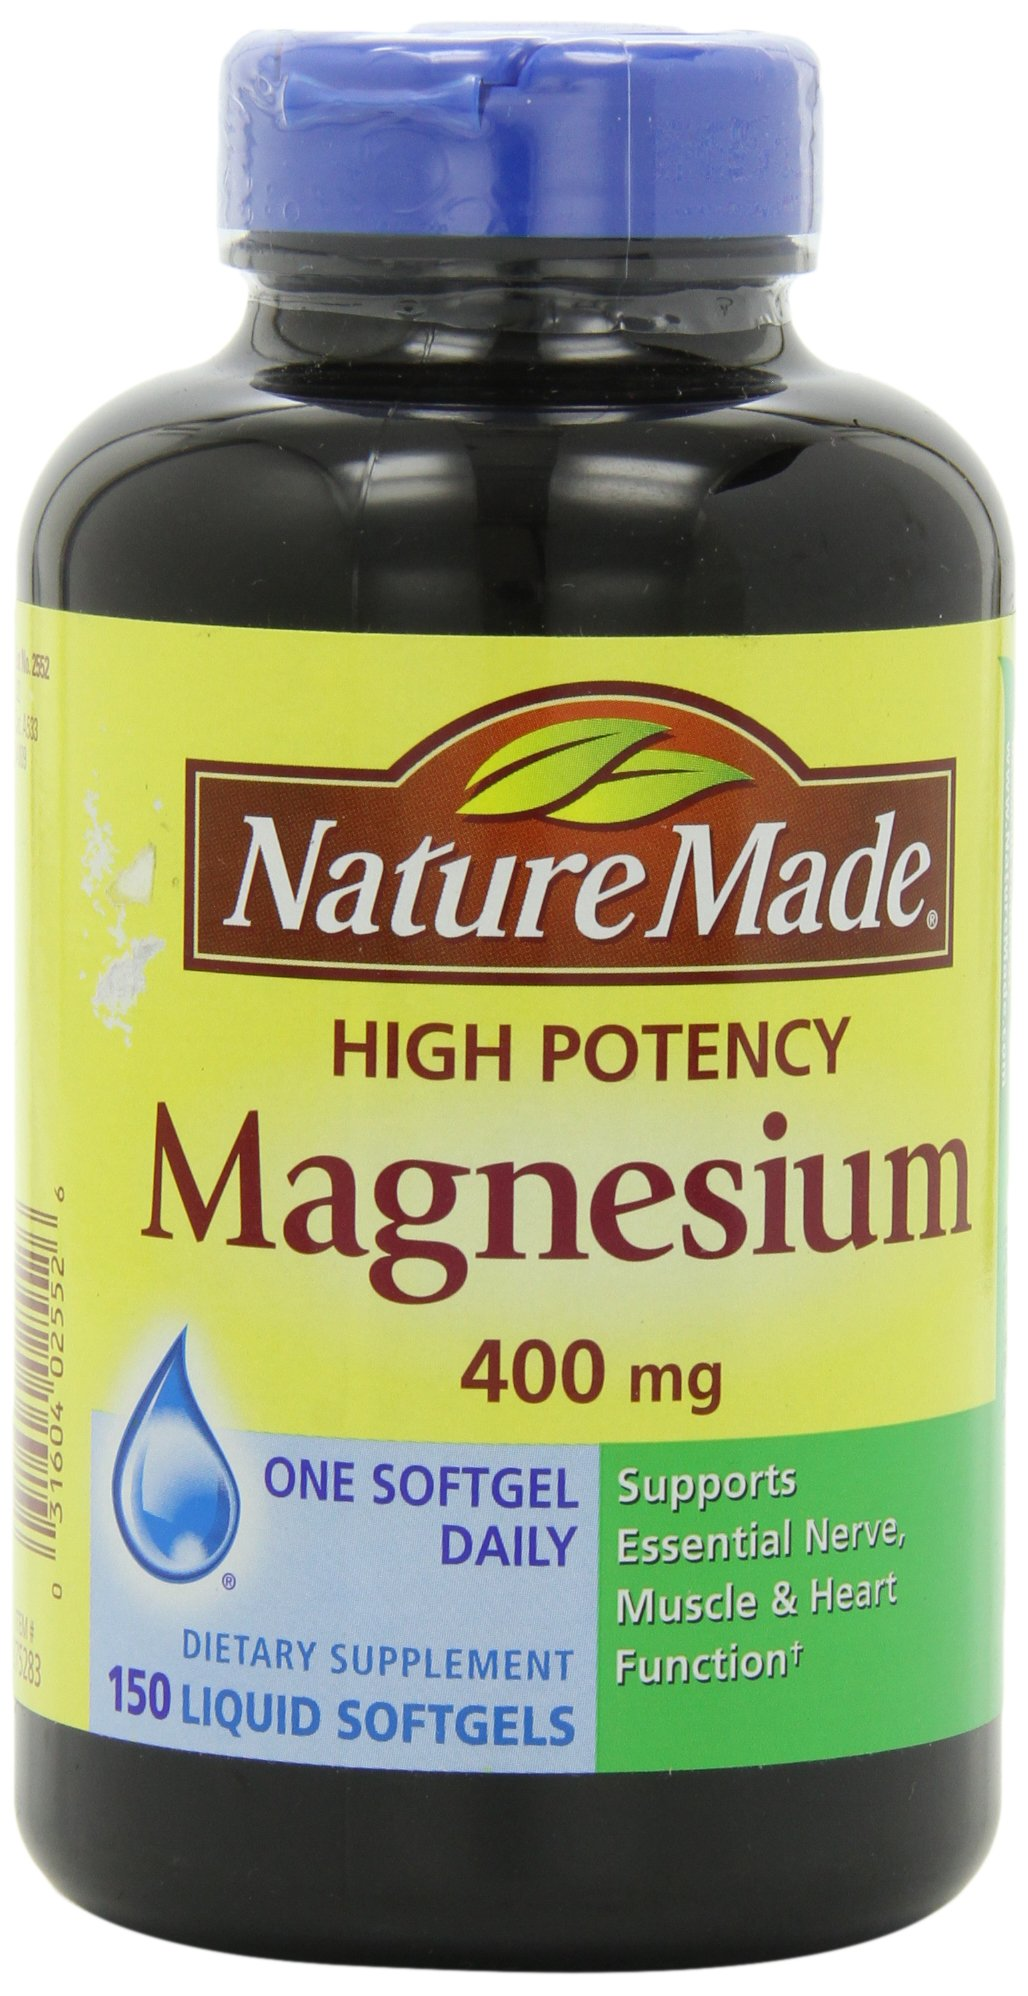 Cheap Magnesium Softgels Find Deals On Line At Puritans Pride Calcium Citrate Plus Vitamin D 100 Capsules Get Quotations Nature Made High Potency 400 Mg 150 Liquid